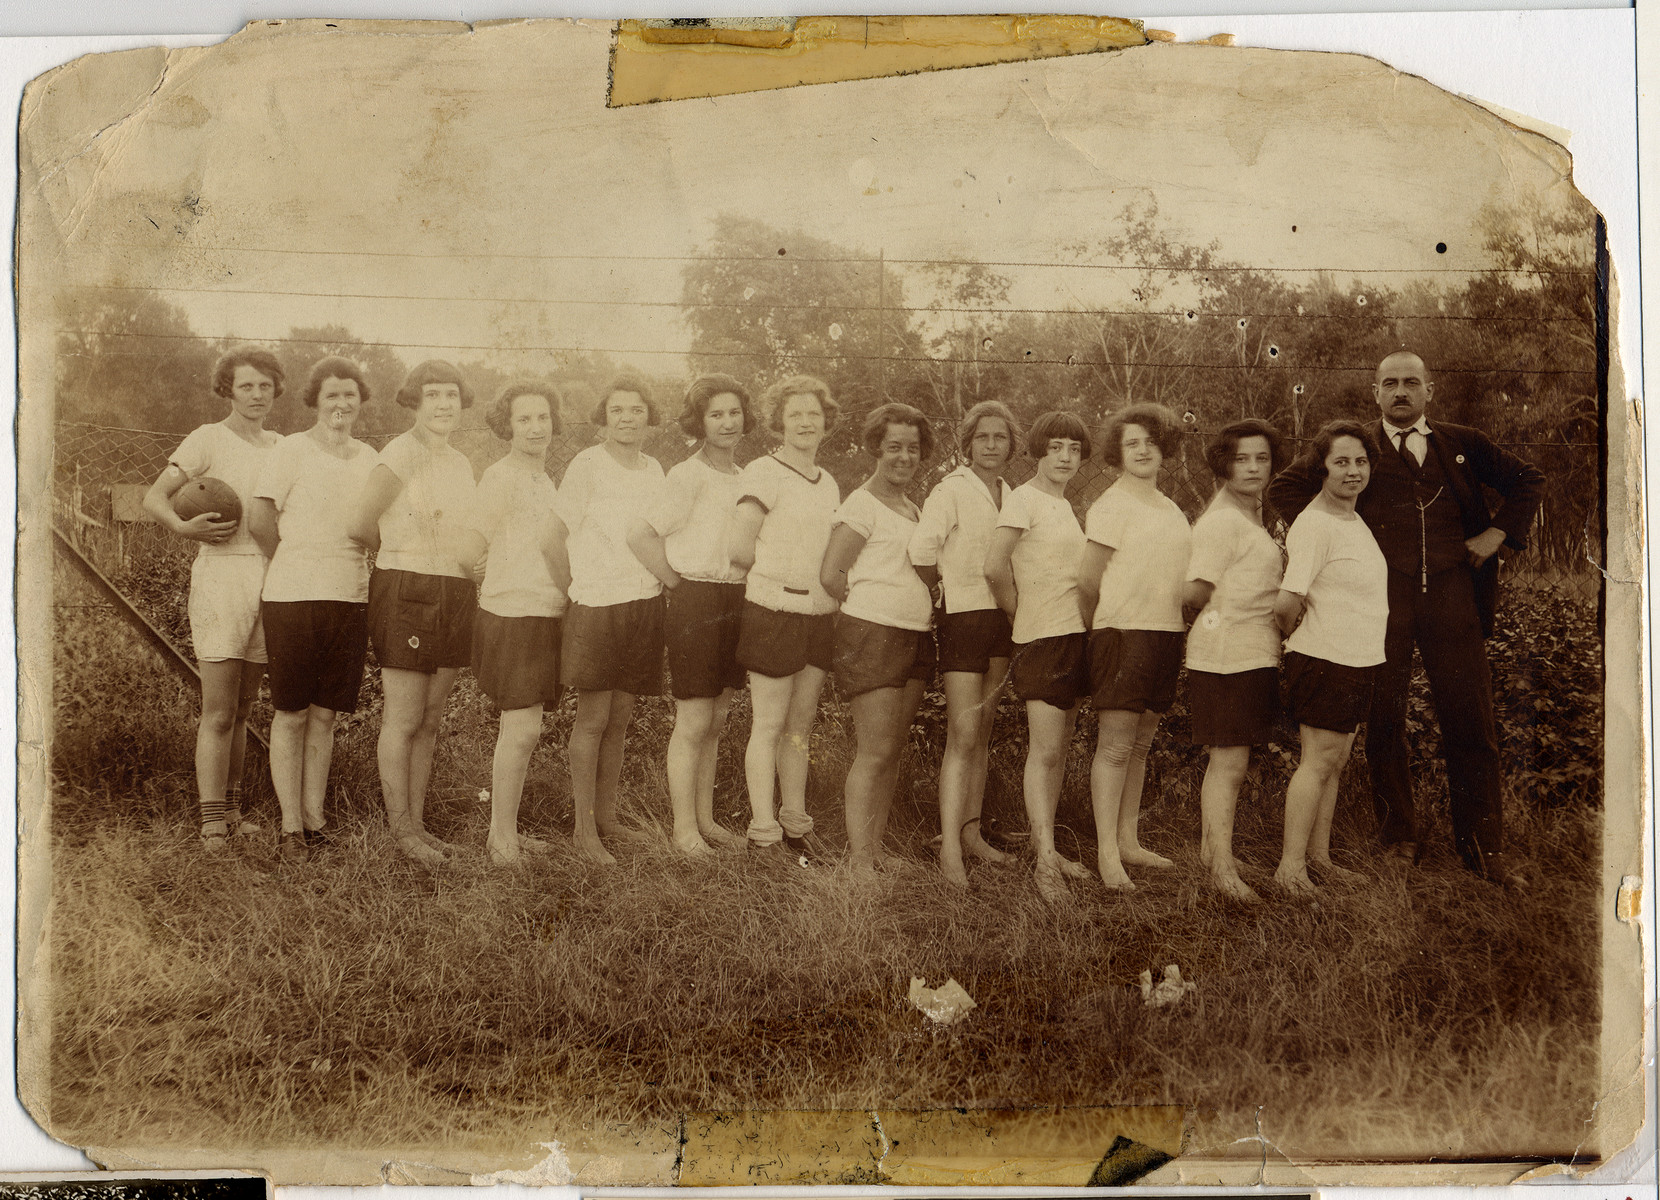 Group portrait of a women's sports club in Vienna.  Among those pictured is Hilda Wiener (fourth from the left).